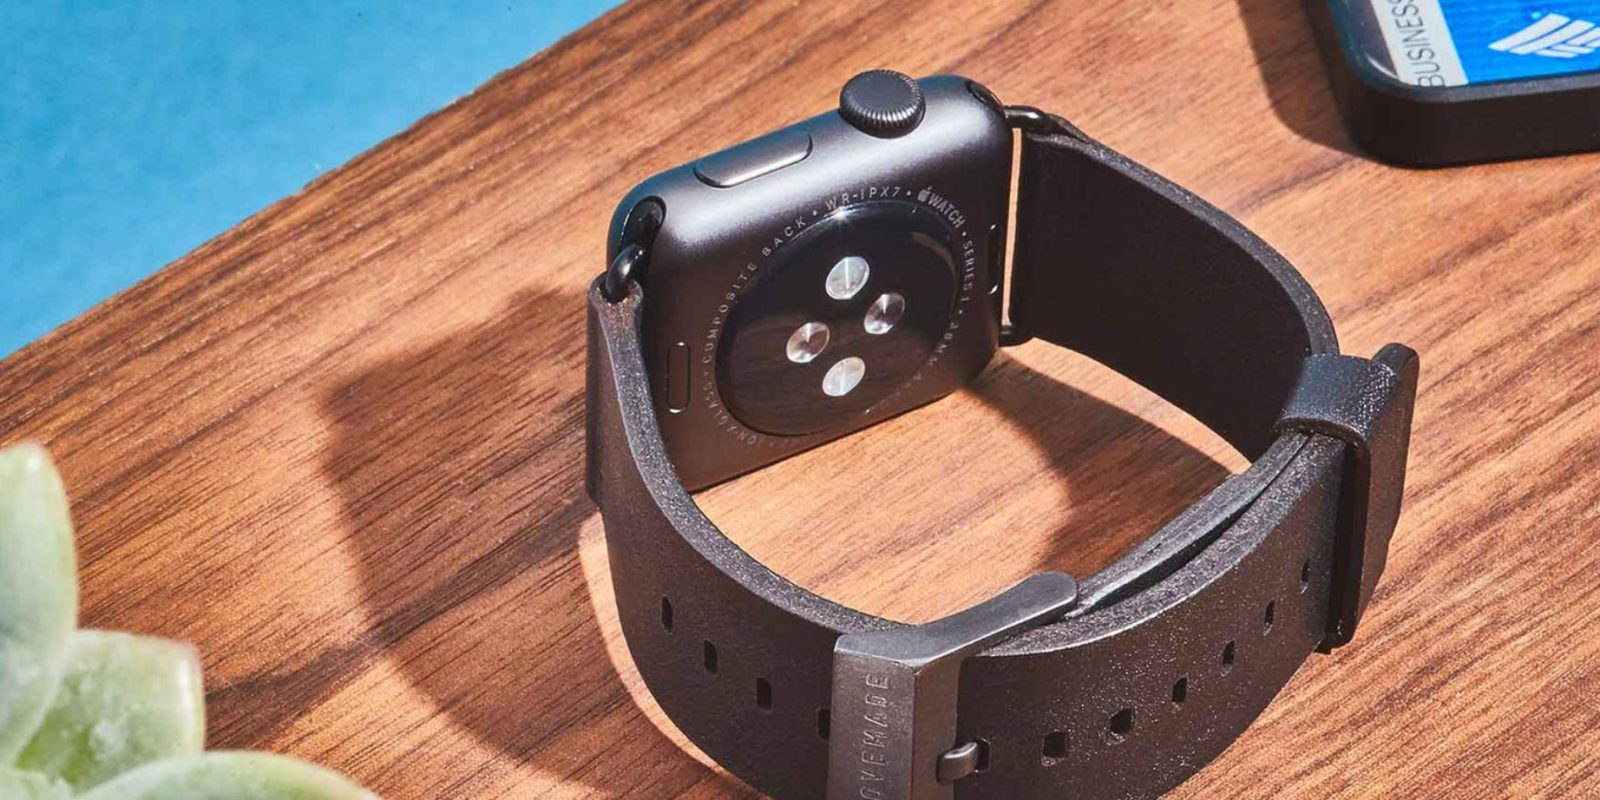 d4dcb1eda Best Apple Watch Series 4 Bands: Sport, Leather, Nylon and more from ...